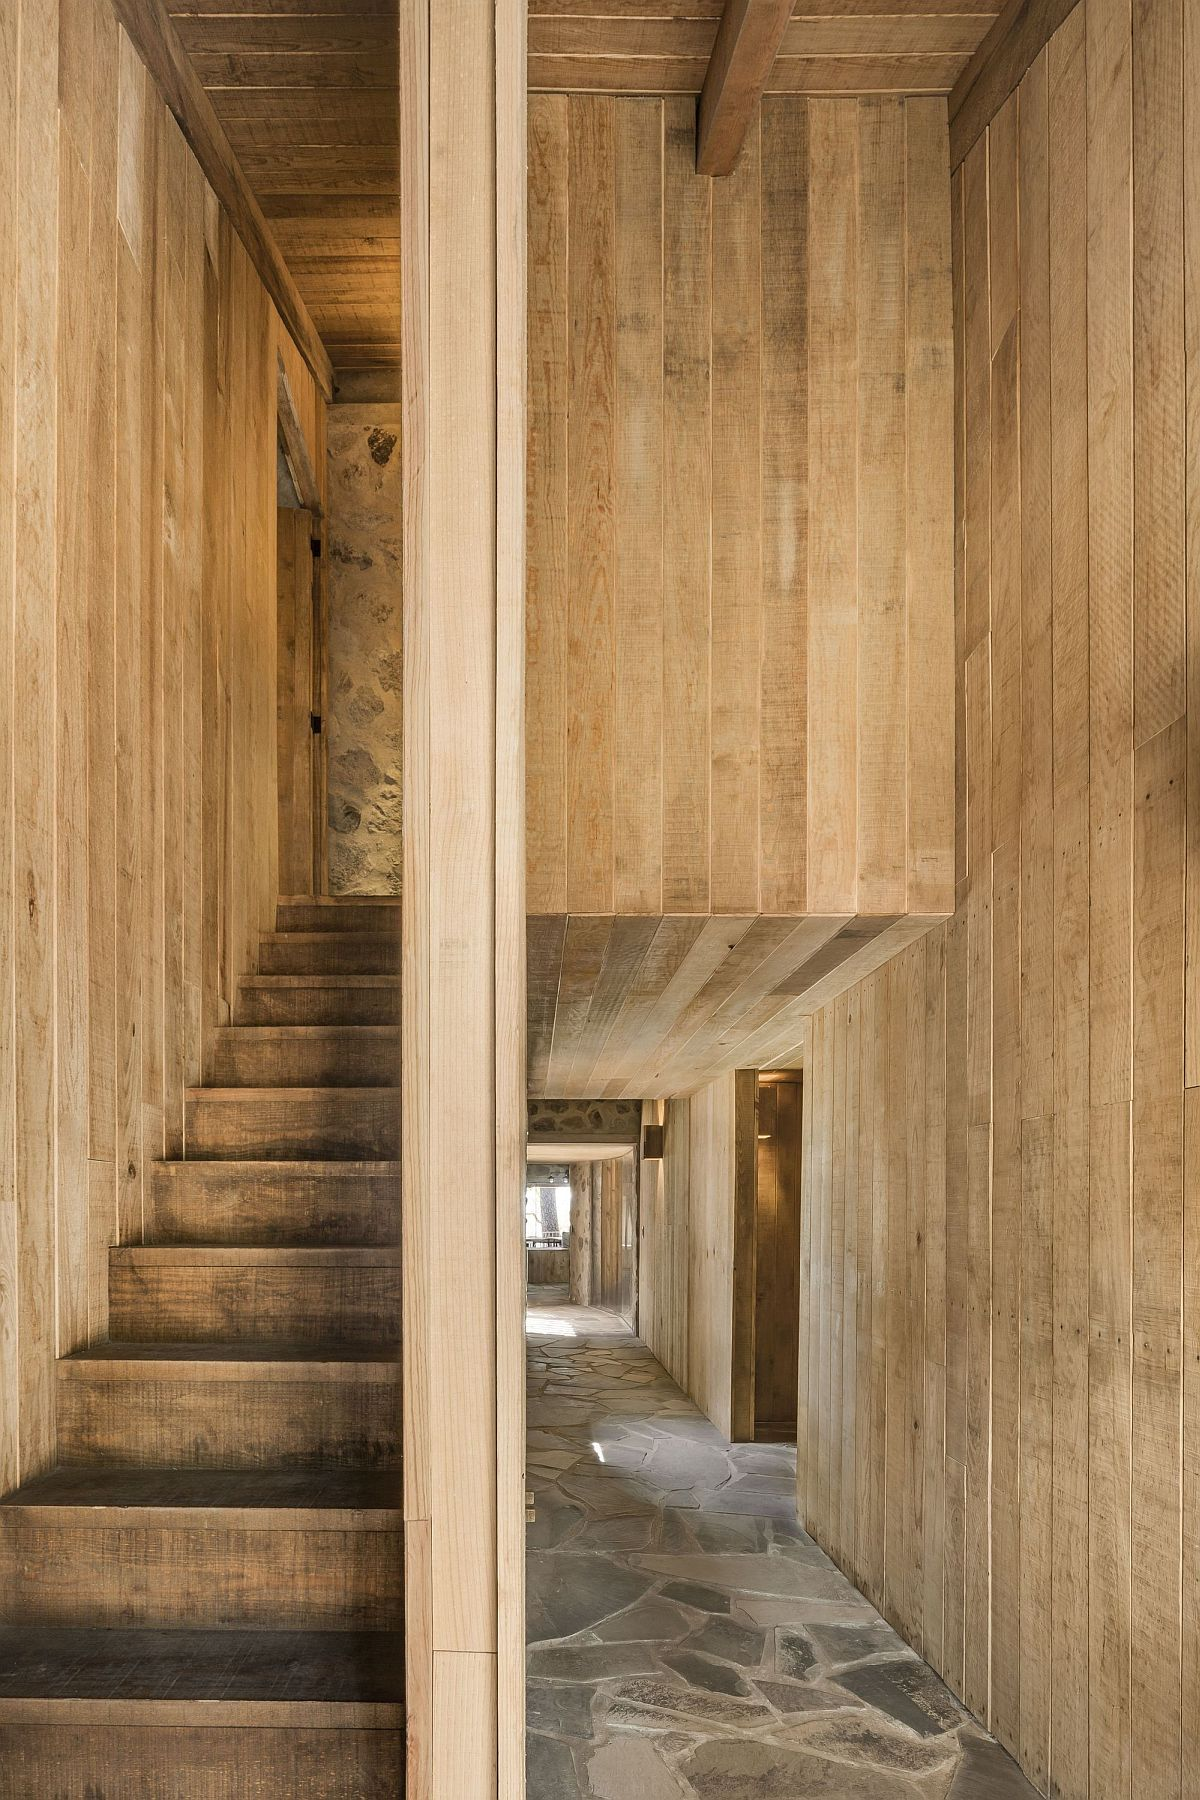 Custom wooden walls and staircase inside the cabin